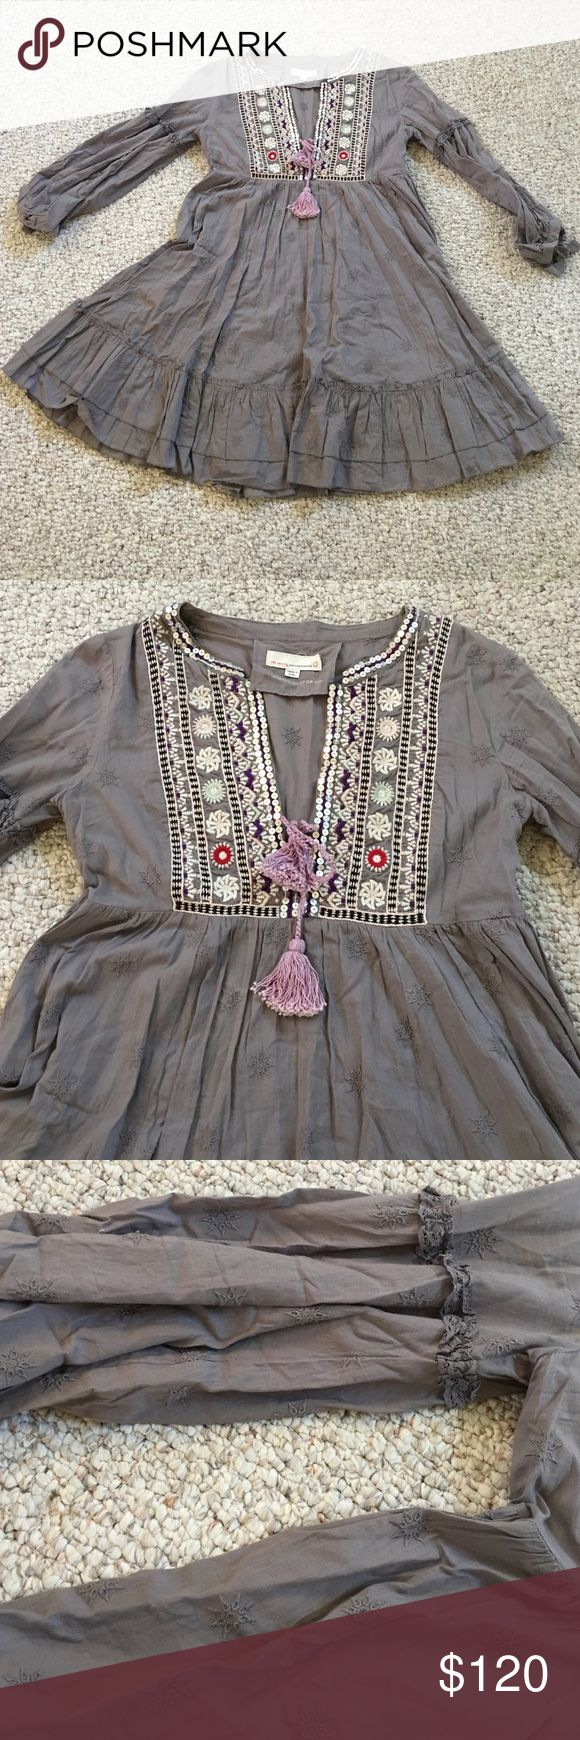 Beautiful Odd Molly Dress, size 2 Beautiful Odd Molly Dress, size 2. Absolutely beautiful Odd Molly dress, worn once! Gray, purple, lavender colors; beautiful detail. Must have! Odd Molly Dresses